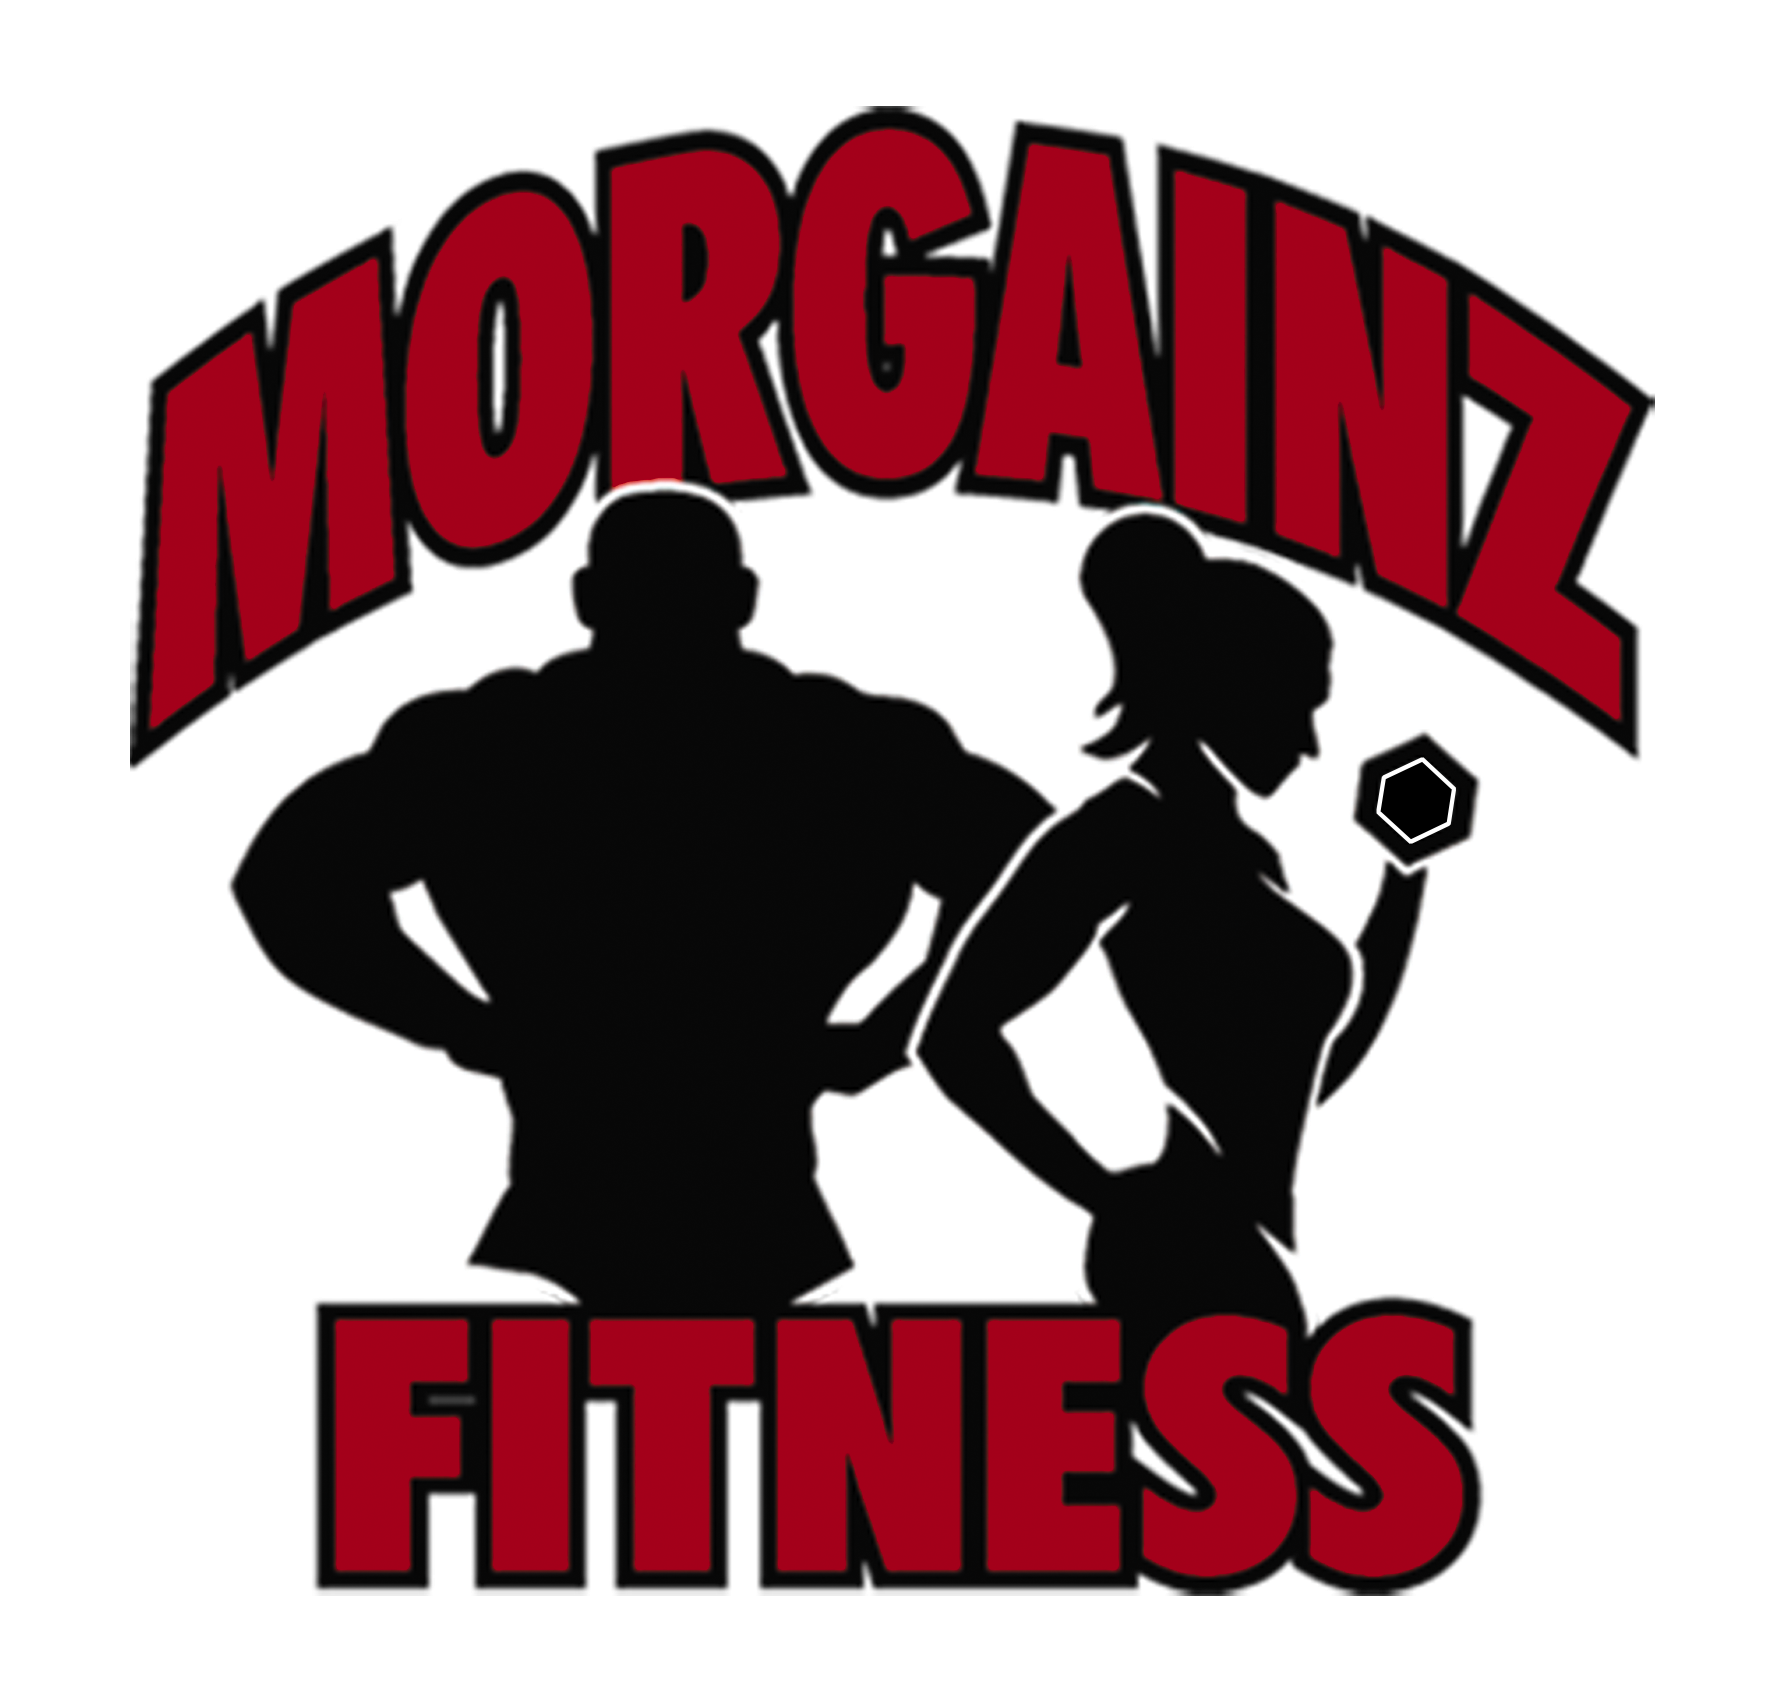 morgainz fitness logo with glow no background color